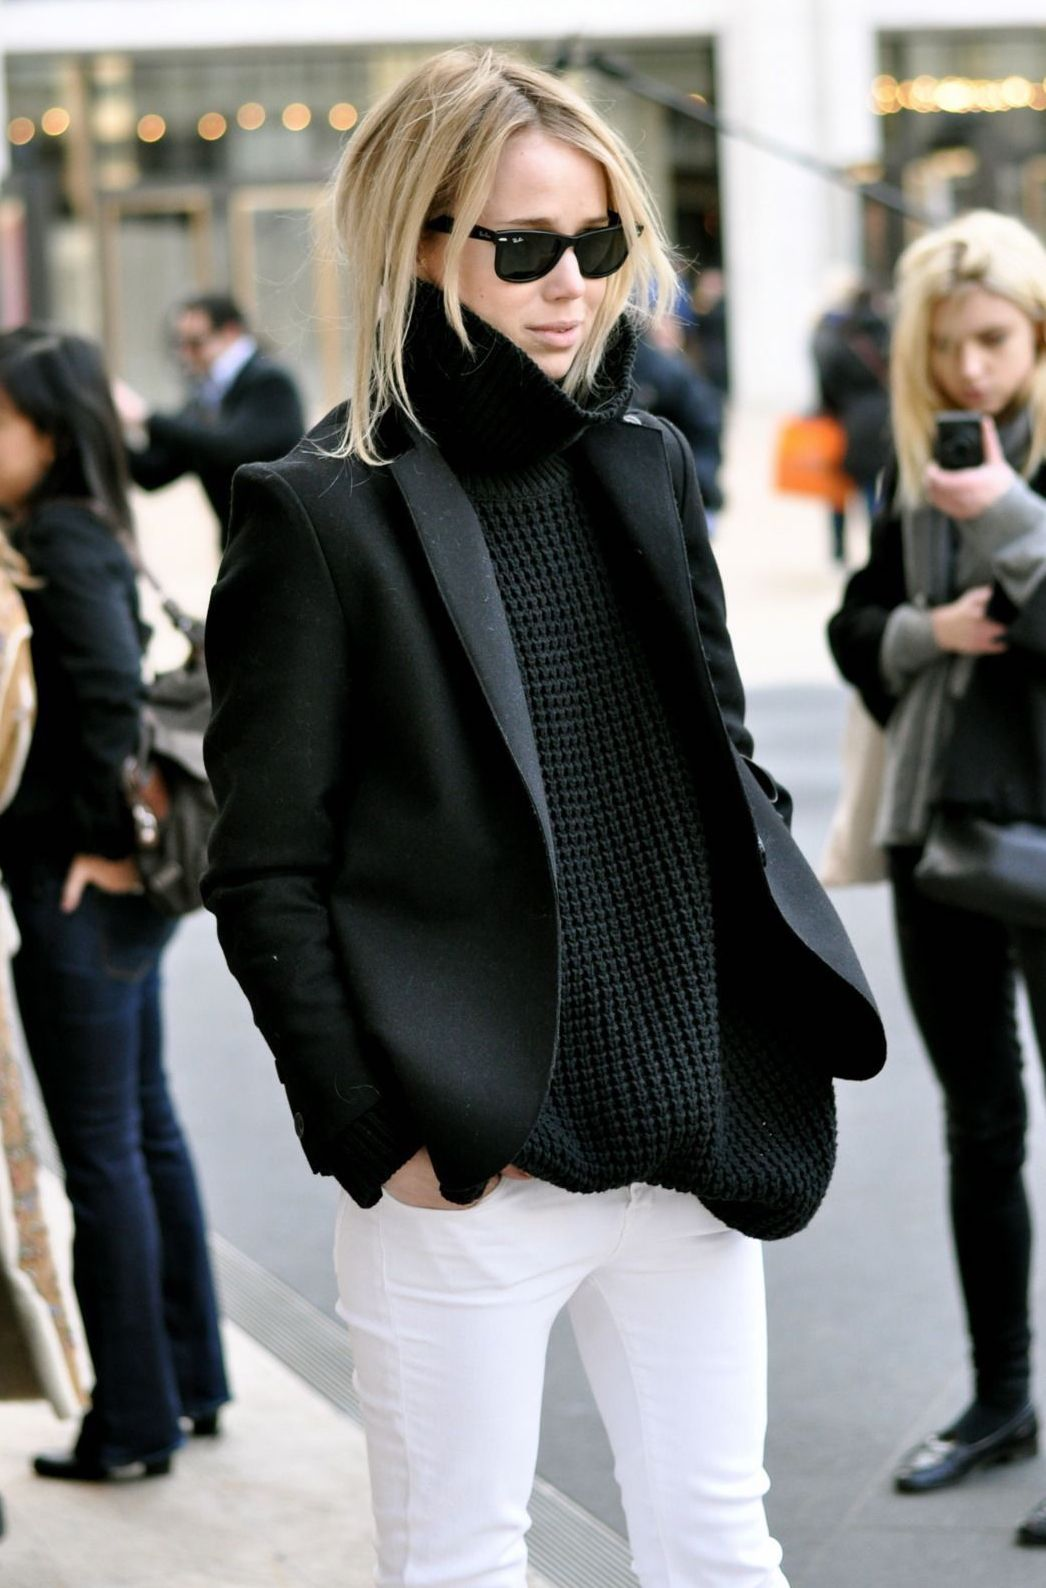 Elin Kling Street Style — Winter Outfit Idea — Black Turtleneck Sweater, Tuxedo Blazer Jacket, White Jeans, and Ray-Ban Wayfarer Sunglasses